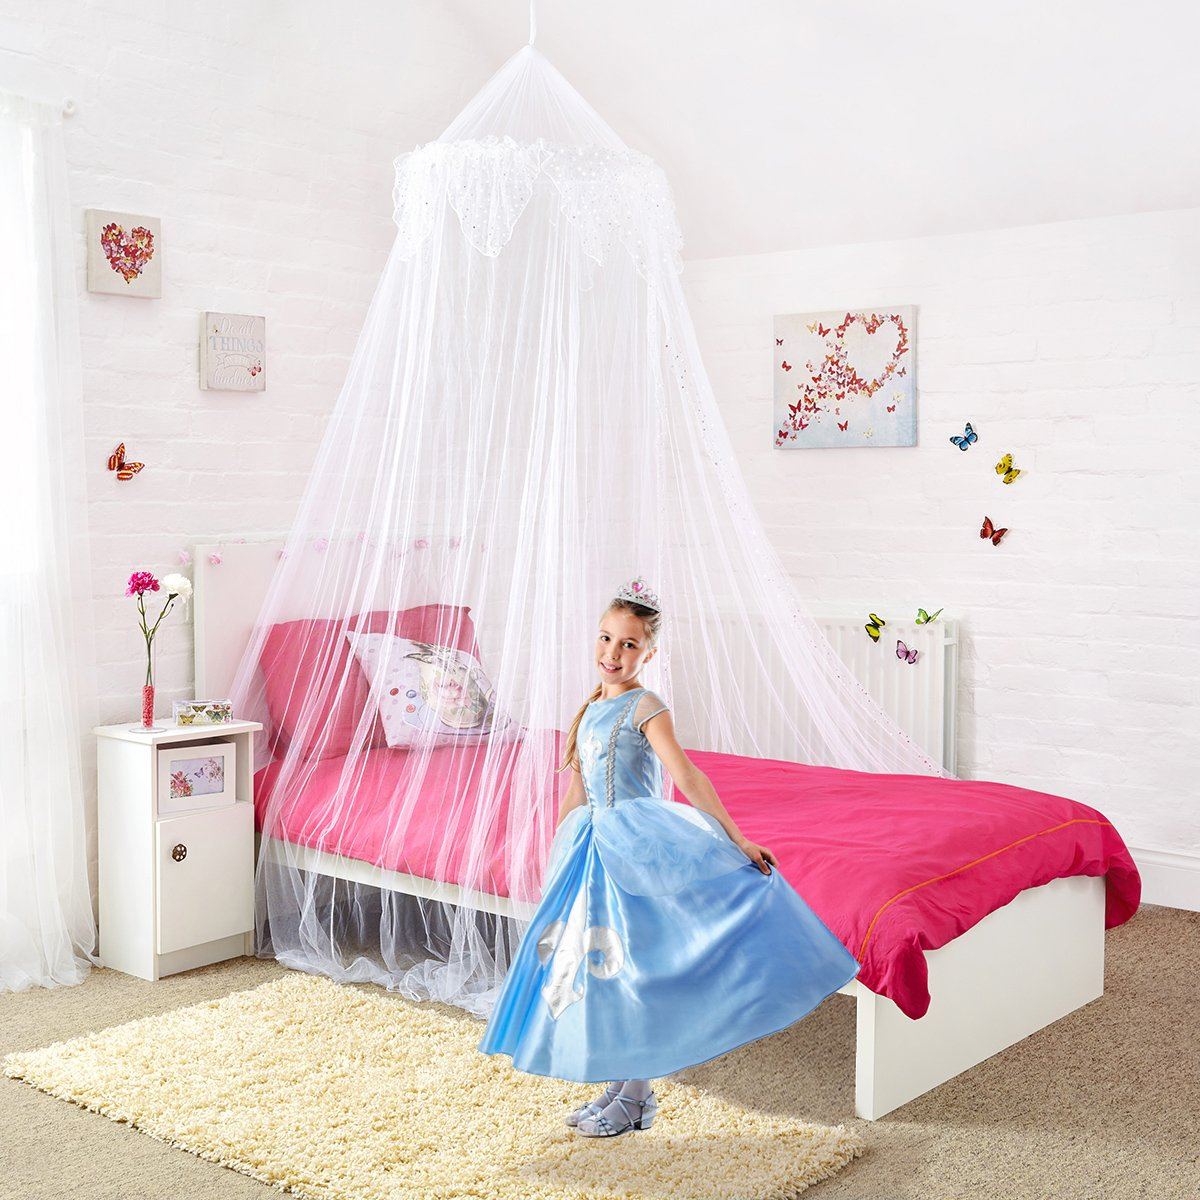 Home and More Store Princess Bed Canopy - Beautiful Silver Sequined Childrens Bed Canopy in White - Single Bed Mosquito Nets 4 U ®